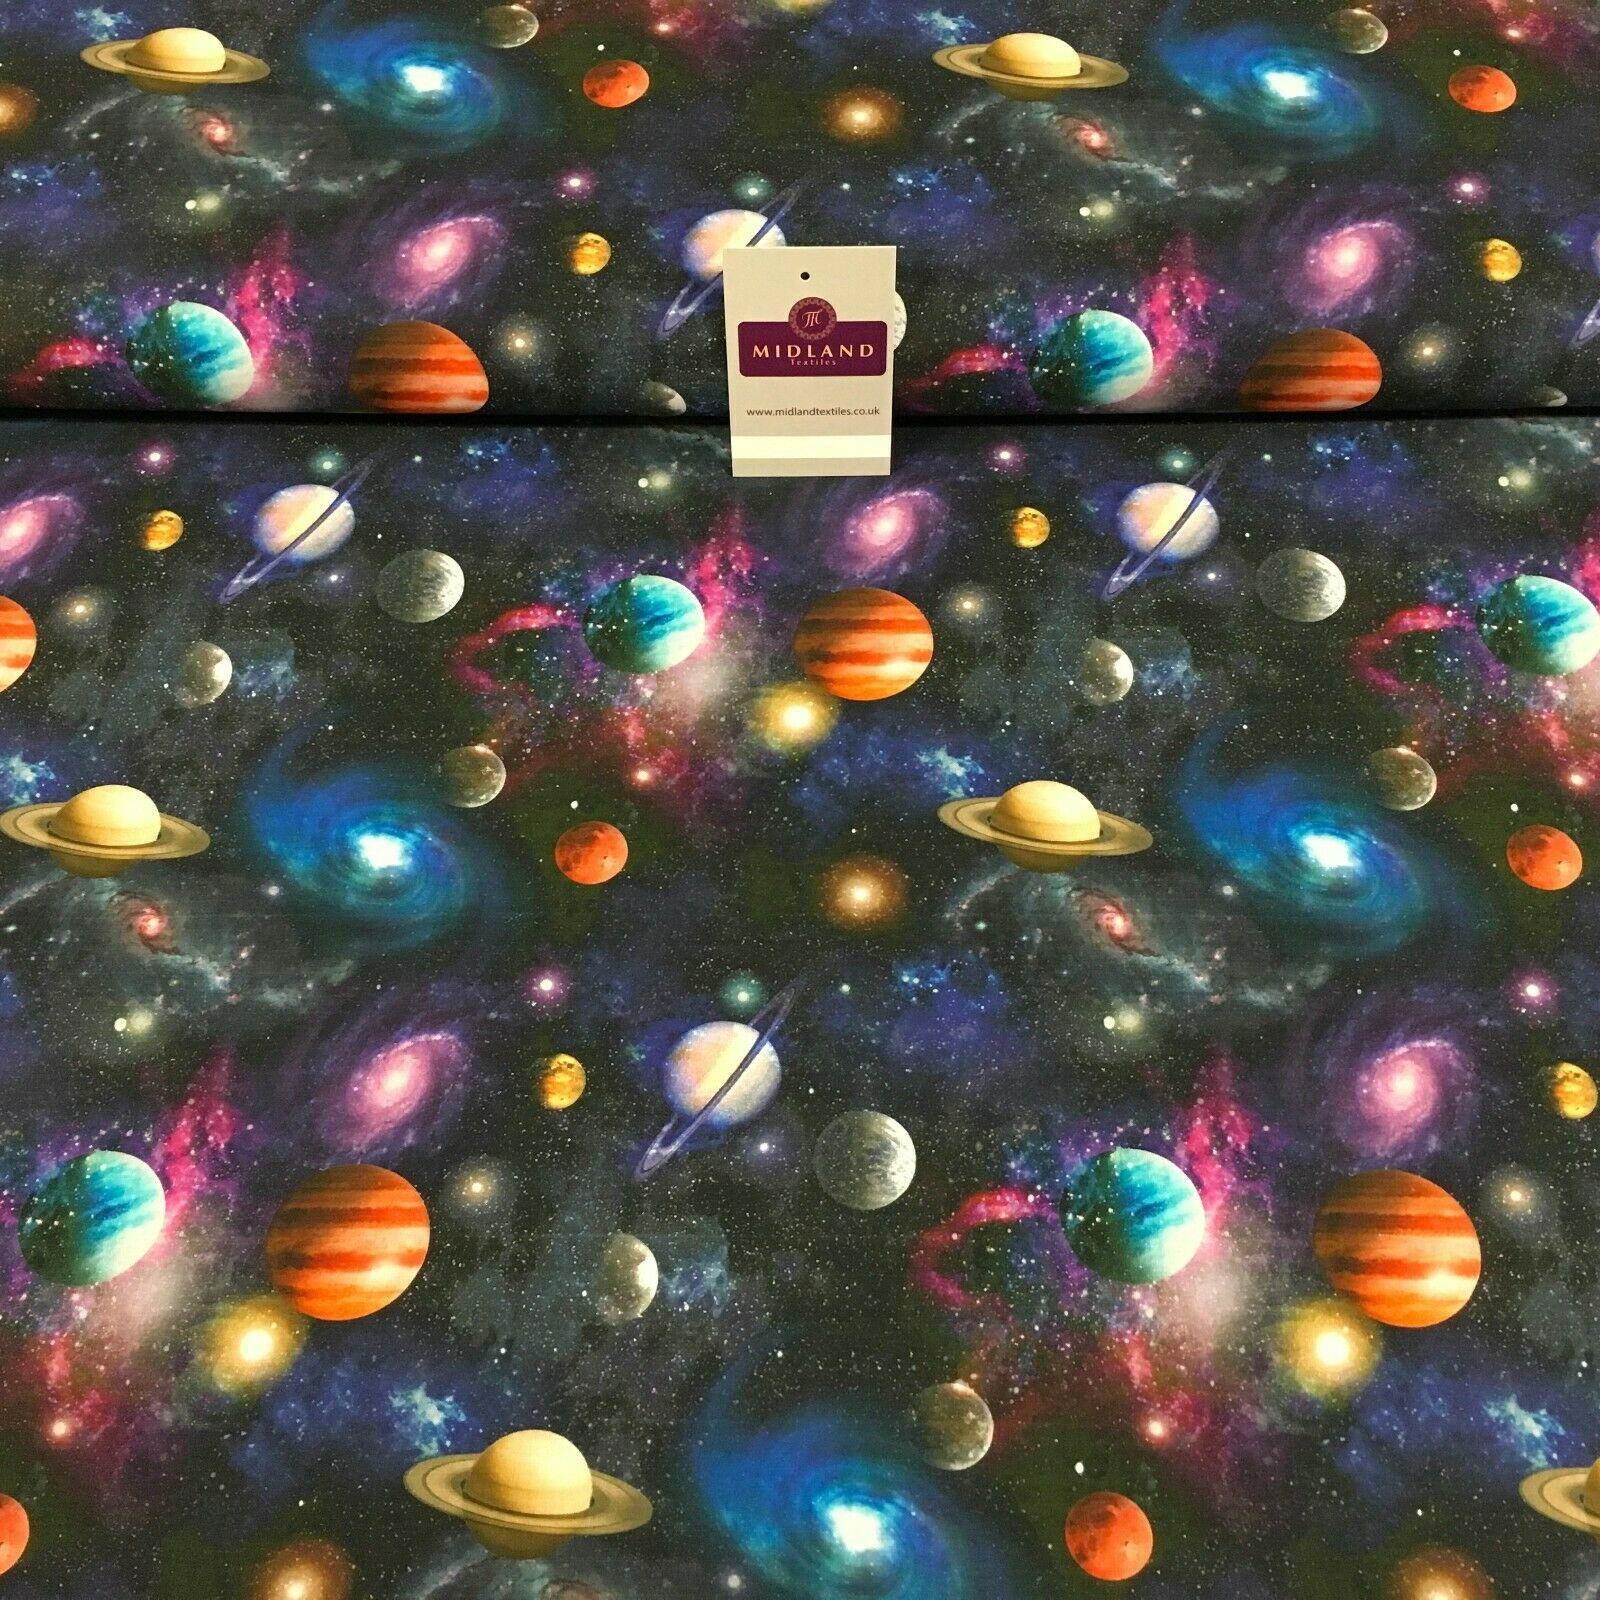 Navy Digital Printed Universe Galaxy 100% Cotton Fabric 150 cm MH1188 Mtex